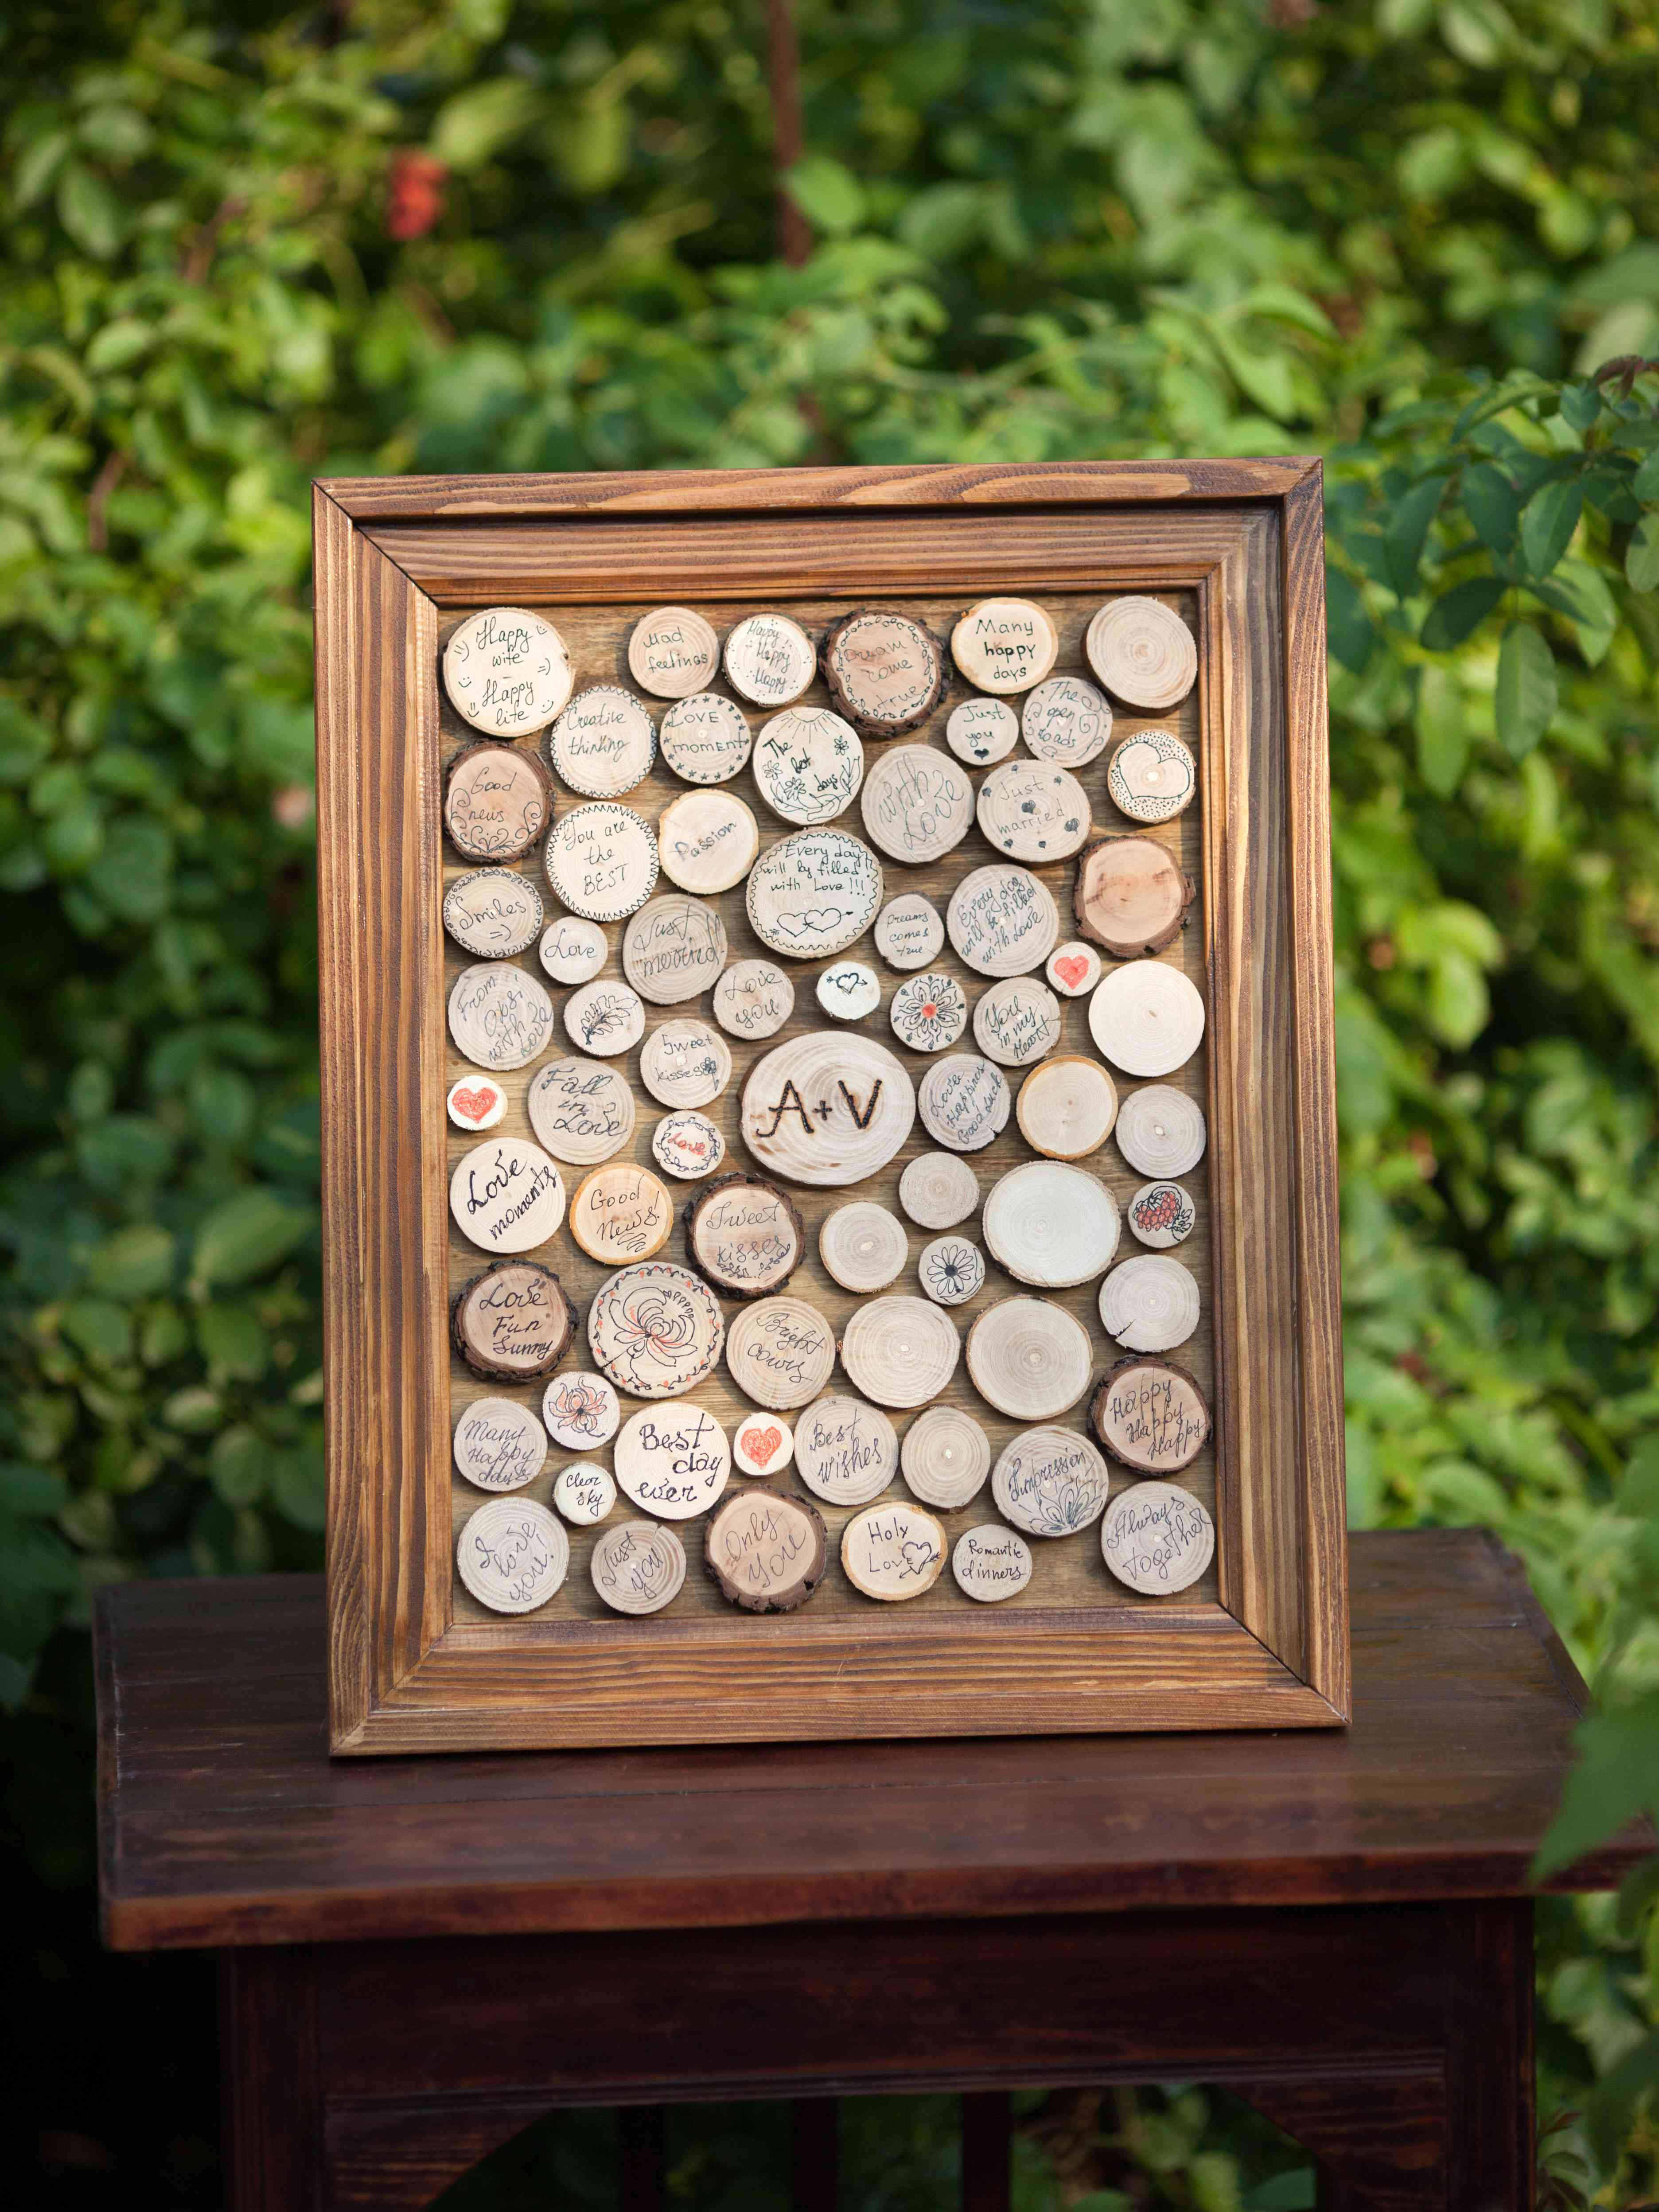 Wooden frame with signed pieces of wood